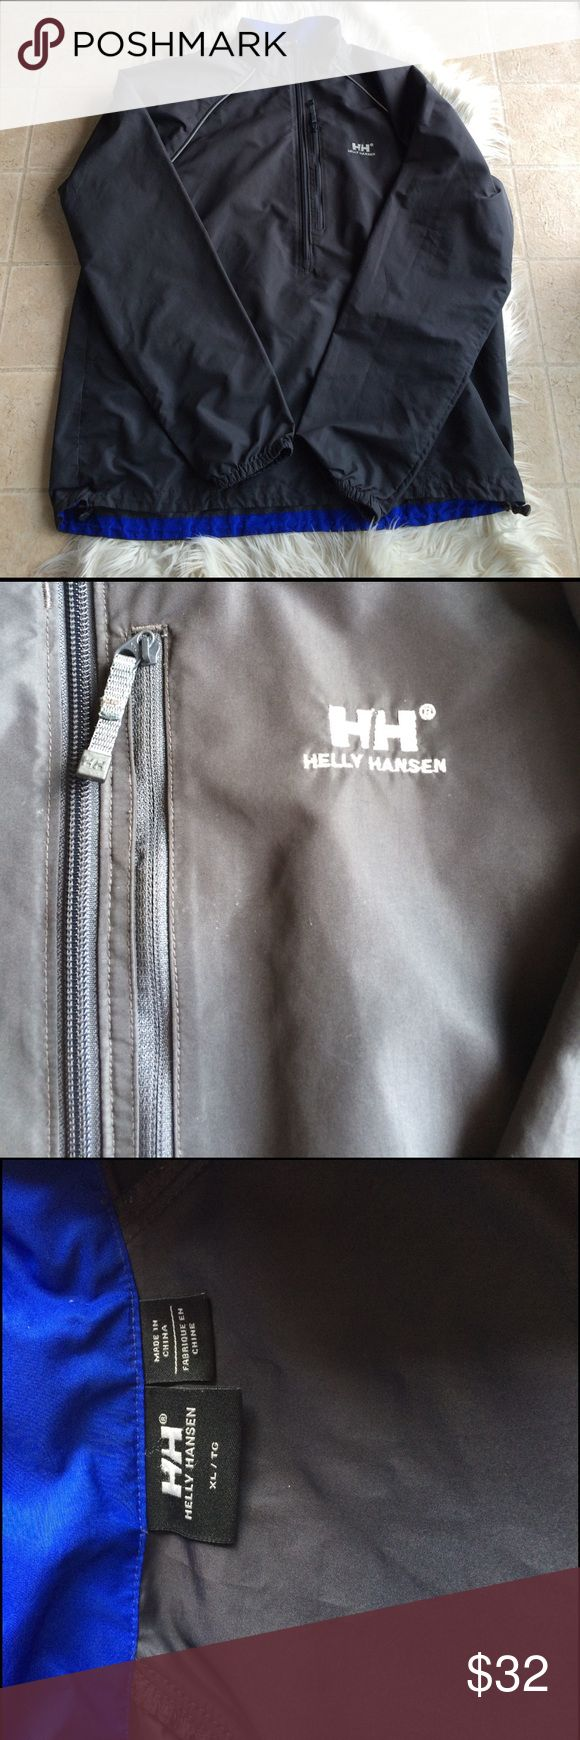 Helly Hansen charcoal gray wind breaker Nice light weight pullover wind breaker by helly Hansen.  Charcoal gray with royal blue accents.  Chest pocket.  Waist can cinch for a tighter fit.  No holes. Used, good condition. Armpit to armpit-24 in.  Shoulder to hem-29 in Helly Hansen Jackets & Coats Windbreakers